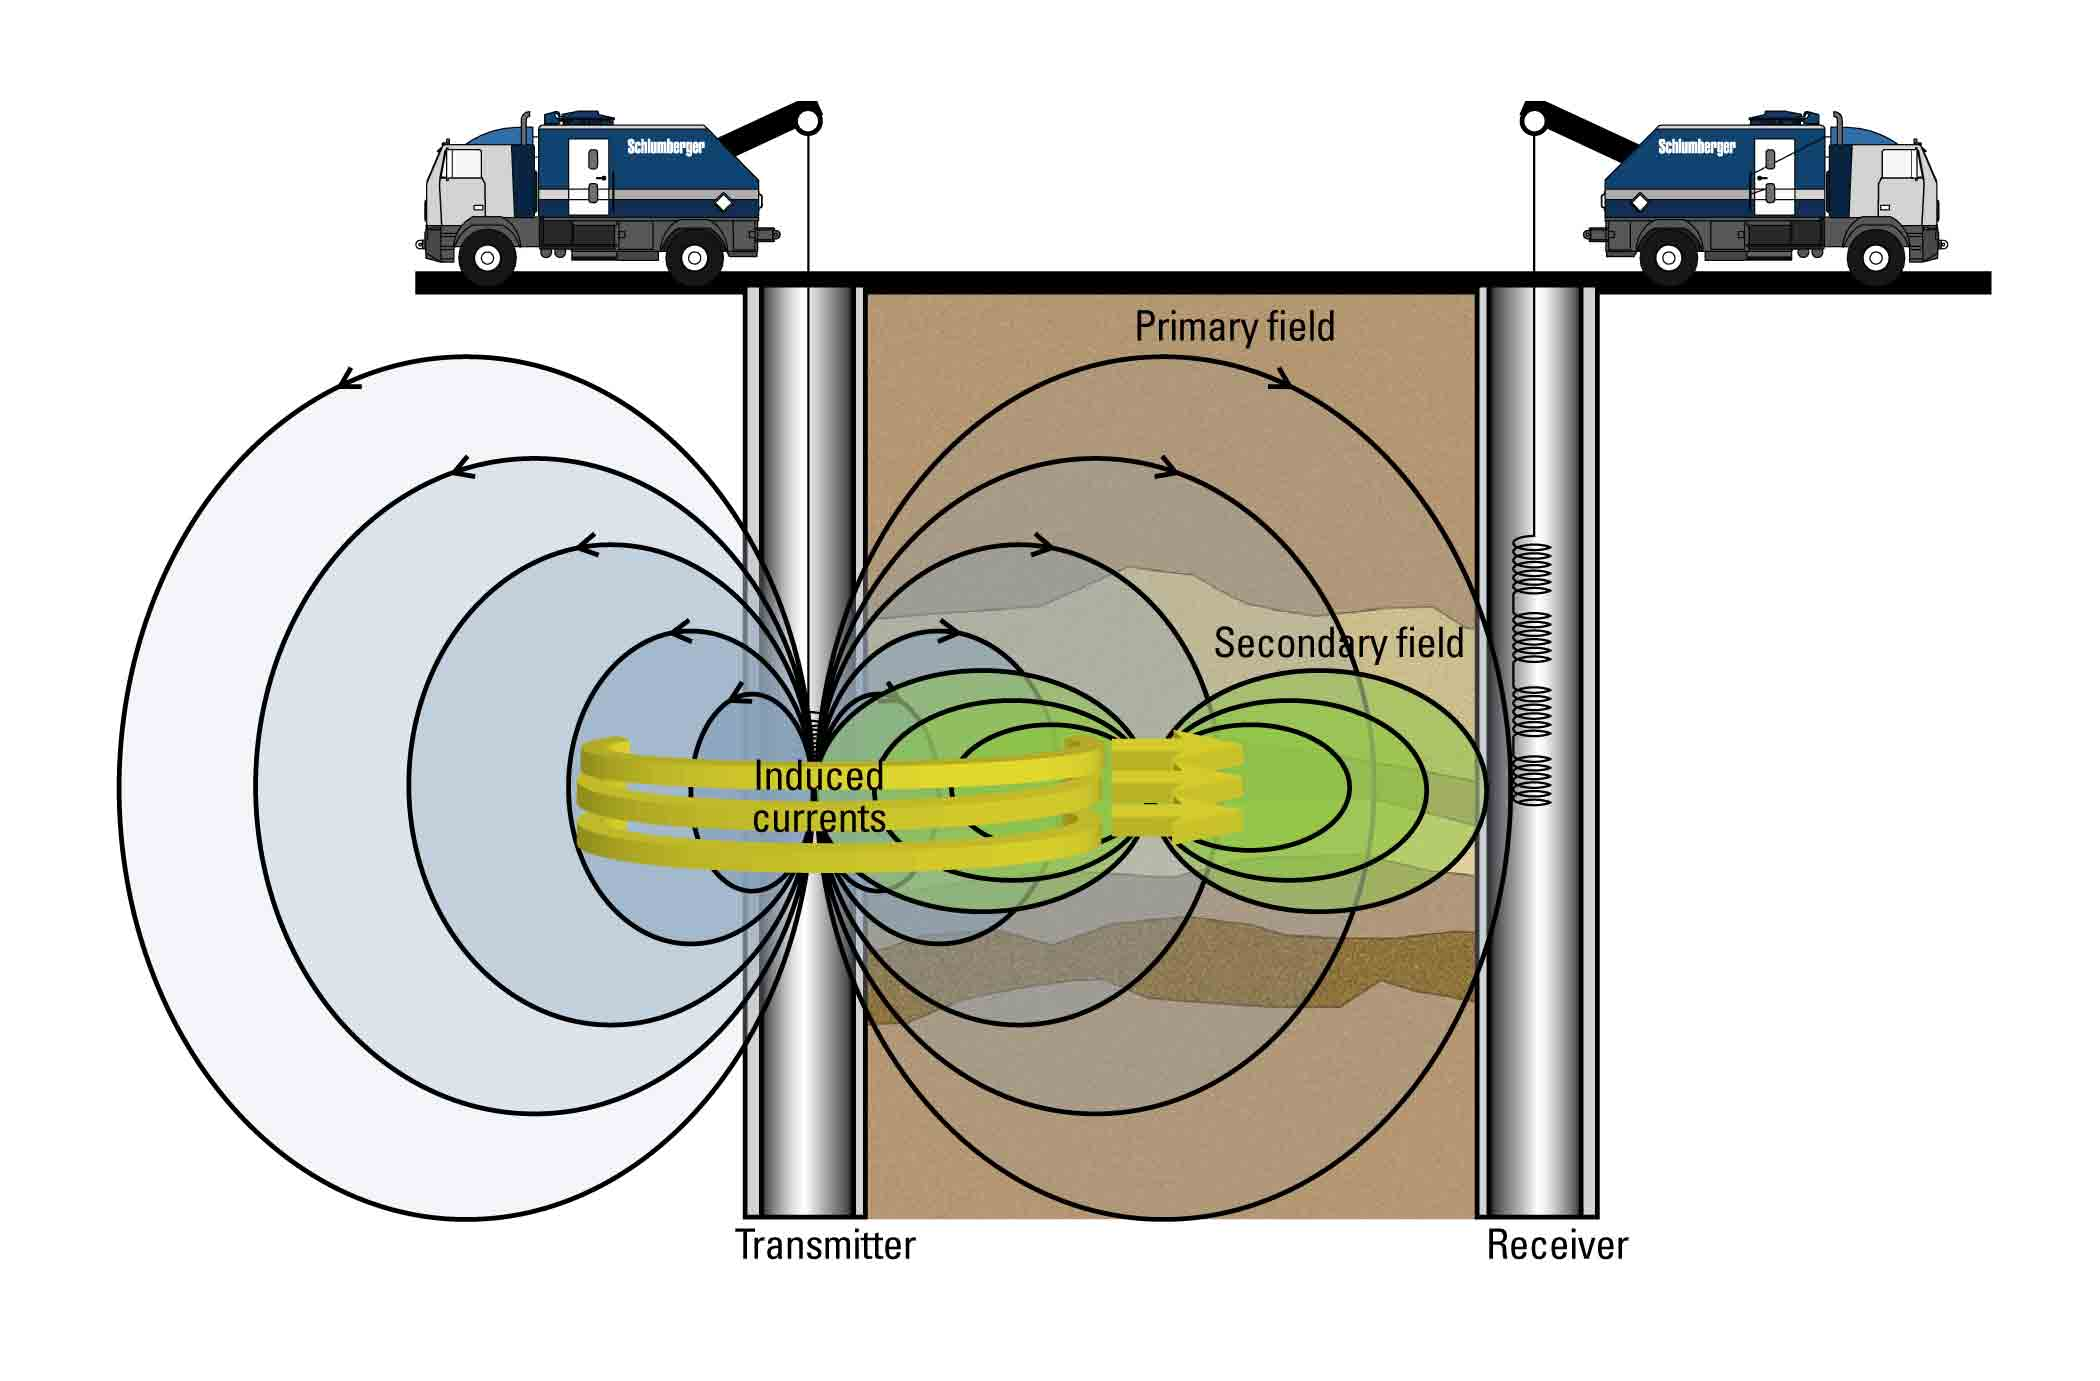 Both the primary magnetic field generated by the transmitter and the secondary magnetic fields resulting from the induced currents are measured by the four receiver sensors.